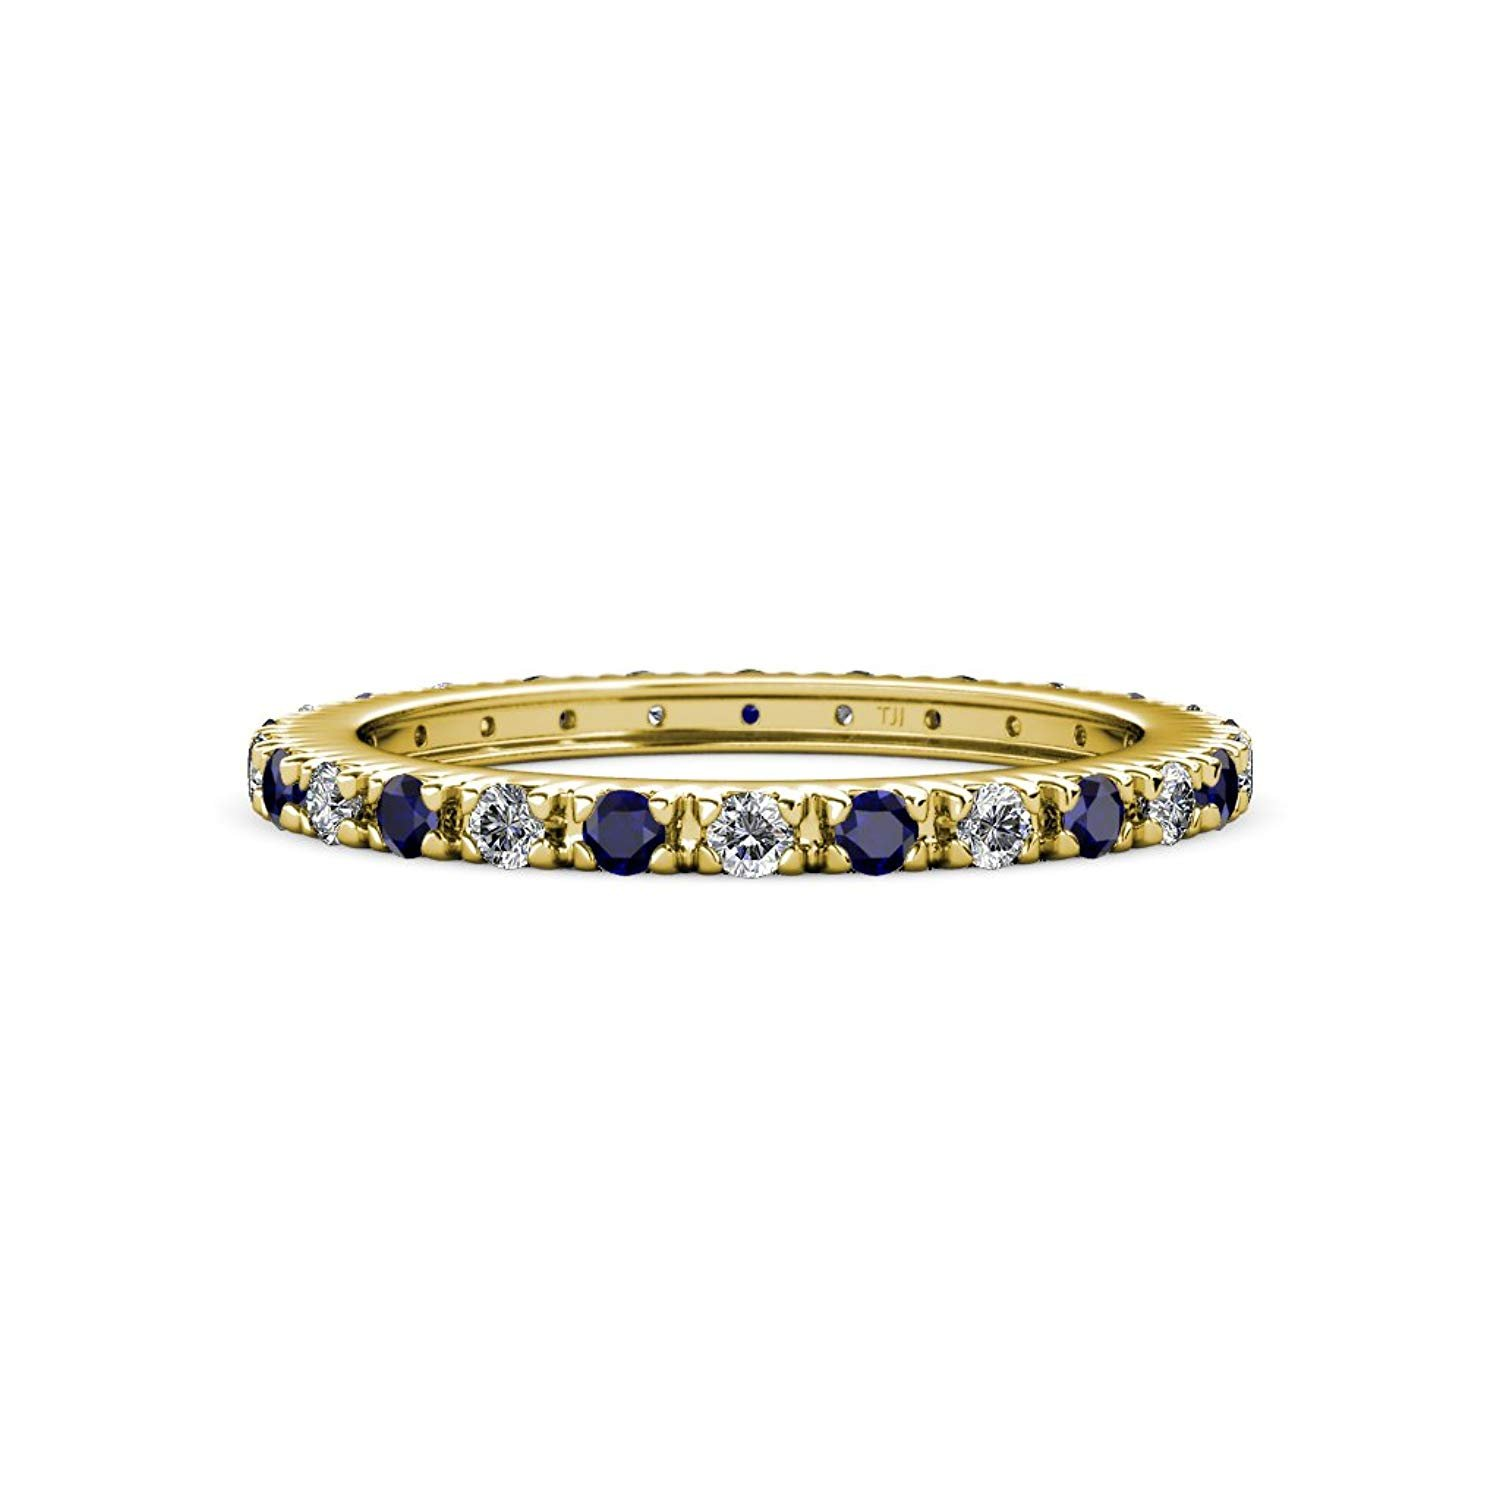 Blue Sapphire & Diamond 2mm French Set Eternity Band 0.71 to 0.86 Carat tw in 14K Yellow Gold.size 7.0 by TriJewels